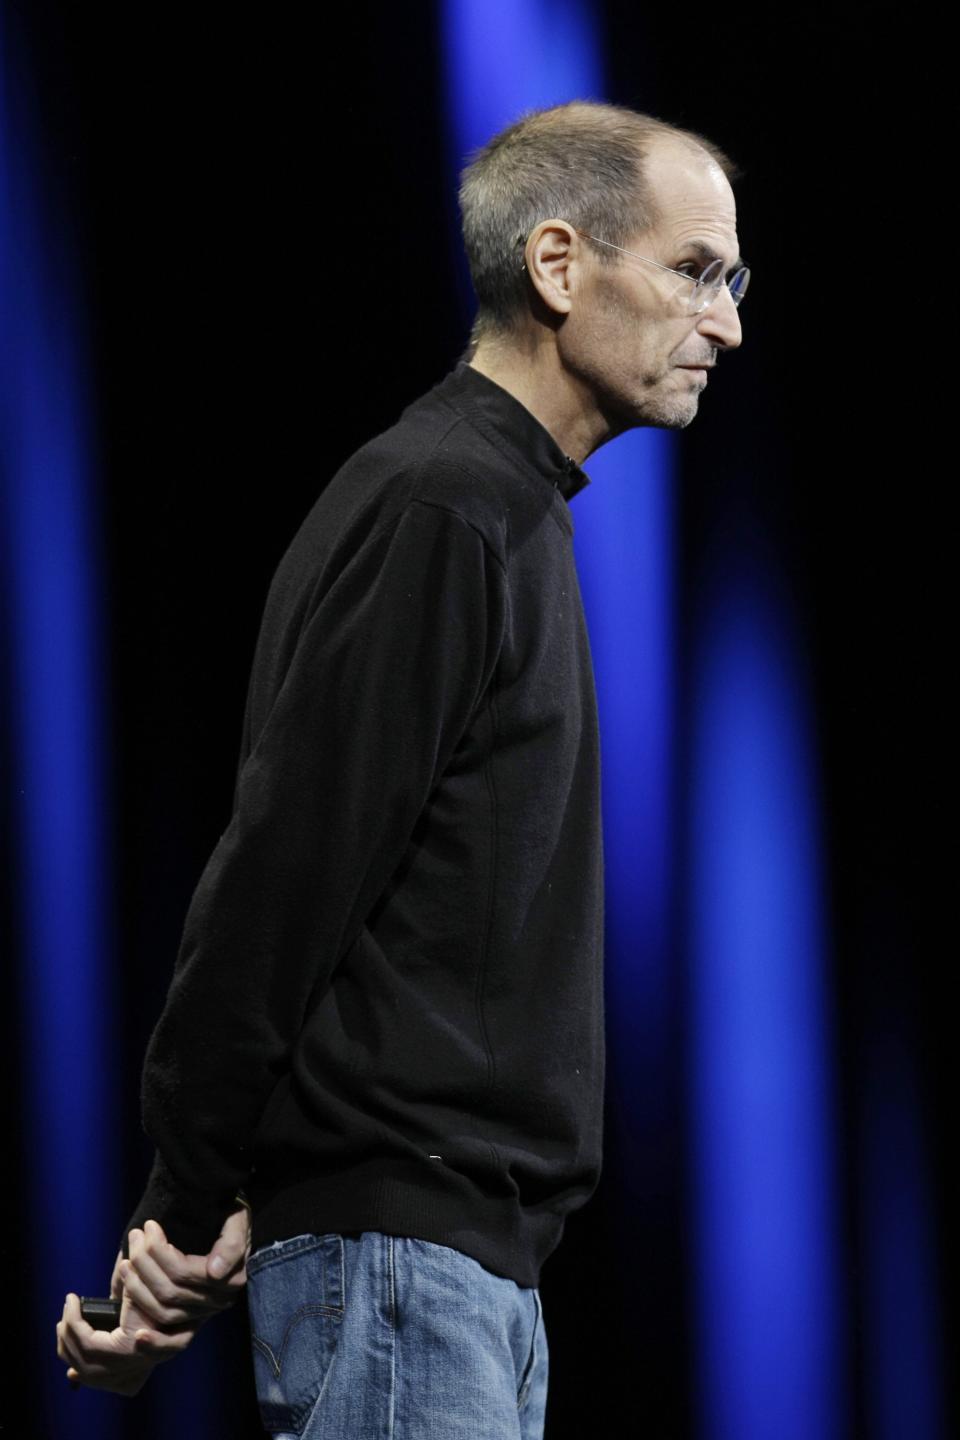 Apple CEO Steve Jobs speaks during a keynote address to the Apple Worldwide Developers Conference in San Francisco, Monday, June 6, 2011.(AP Photo/Paul Sakuma)